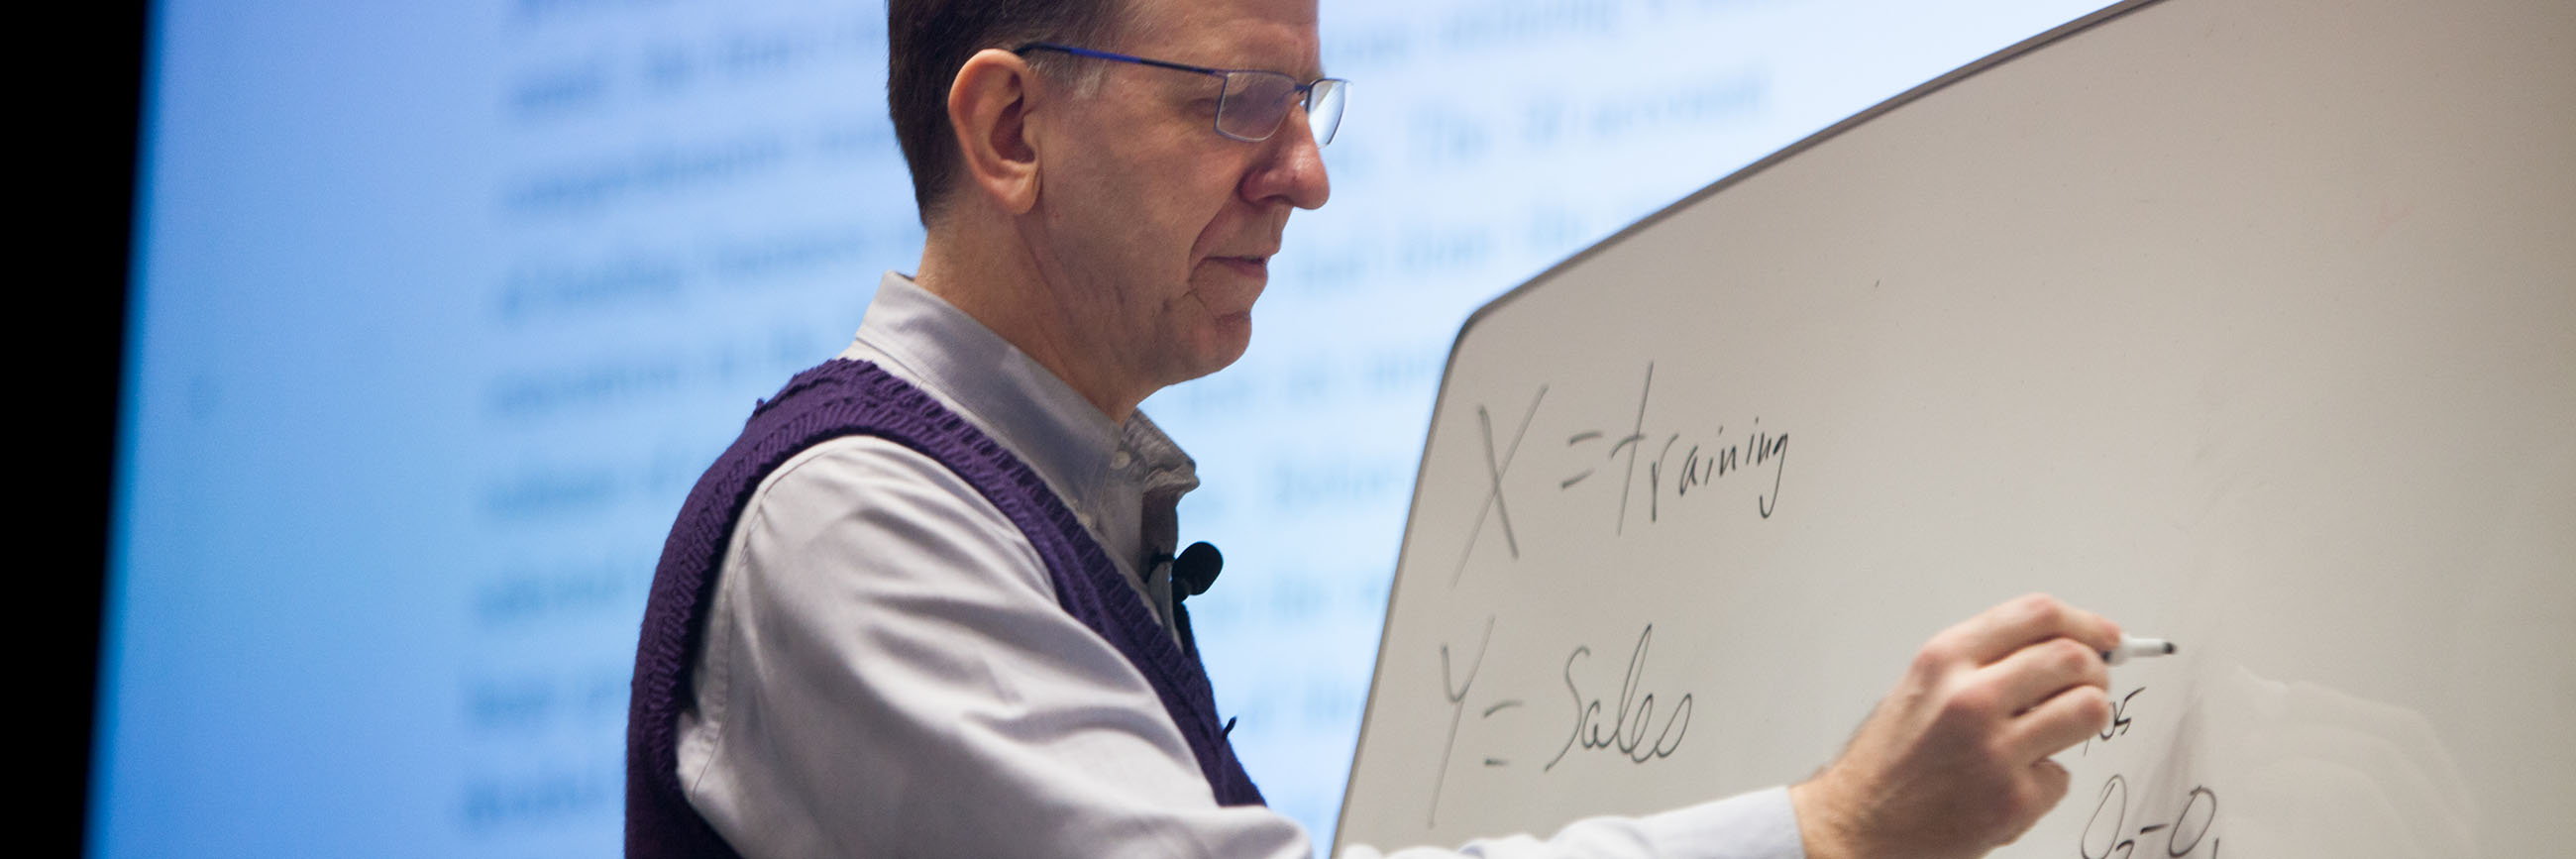 Faculty member writing on a white board.